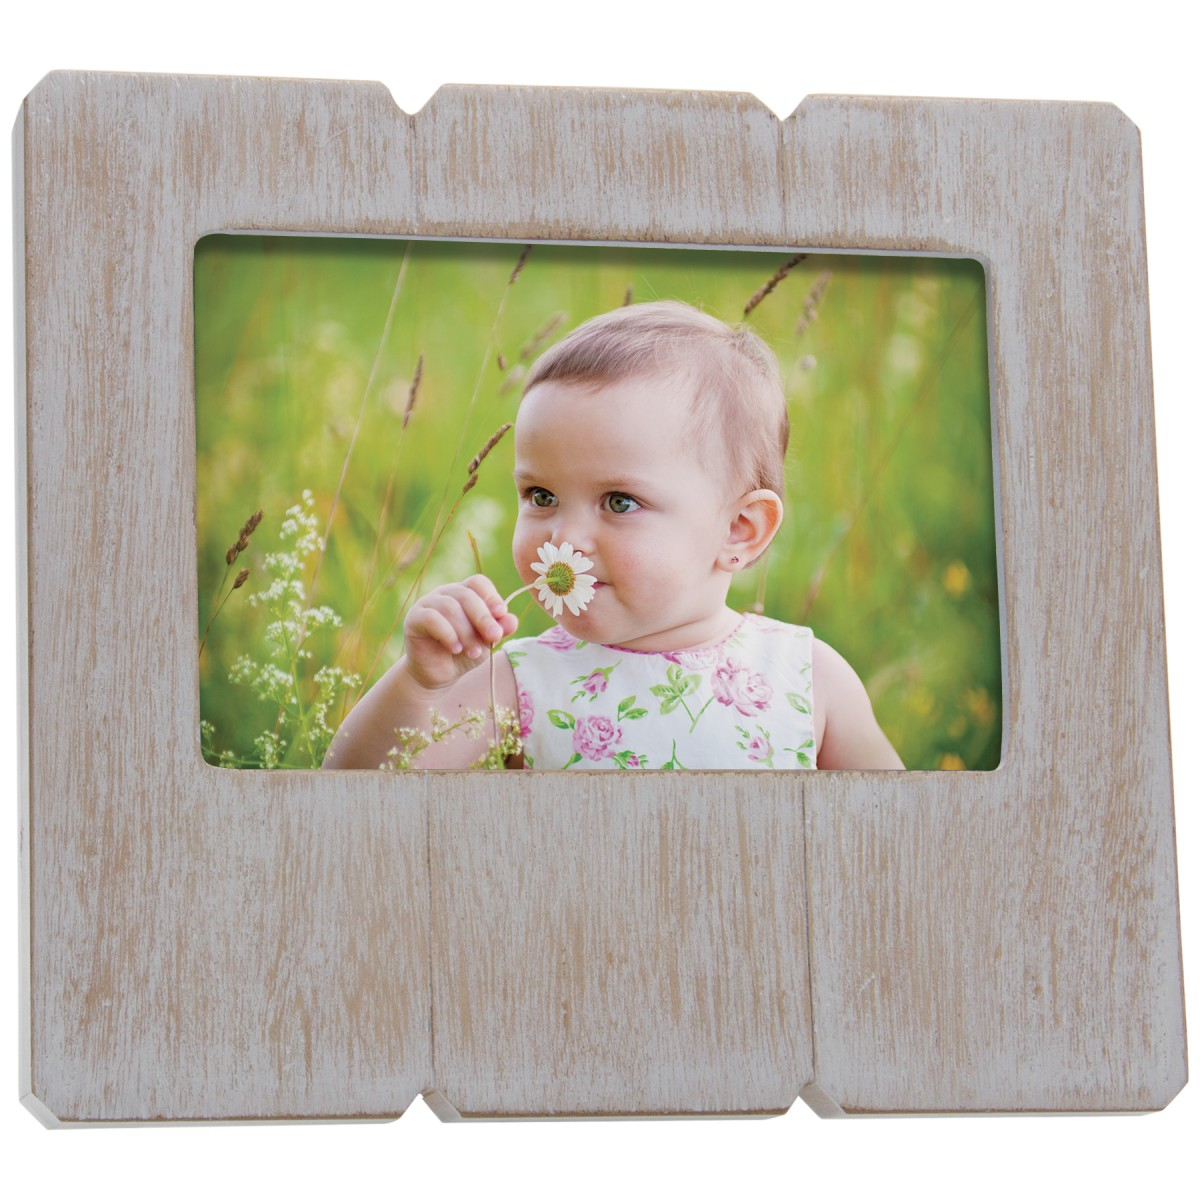 Snap Picture Frames: Distressed Picture Frames Wholesale ... photos ...